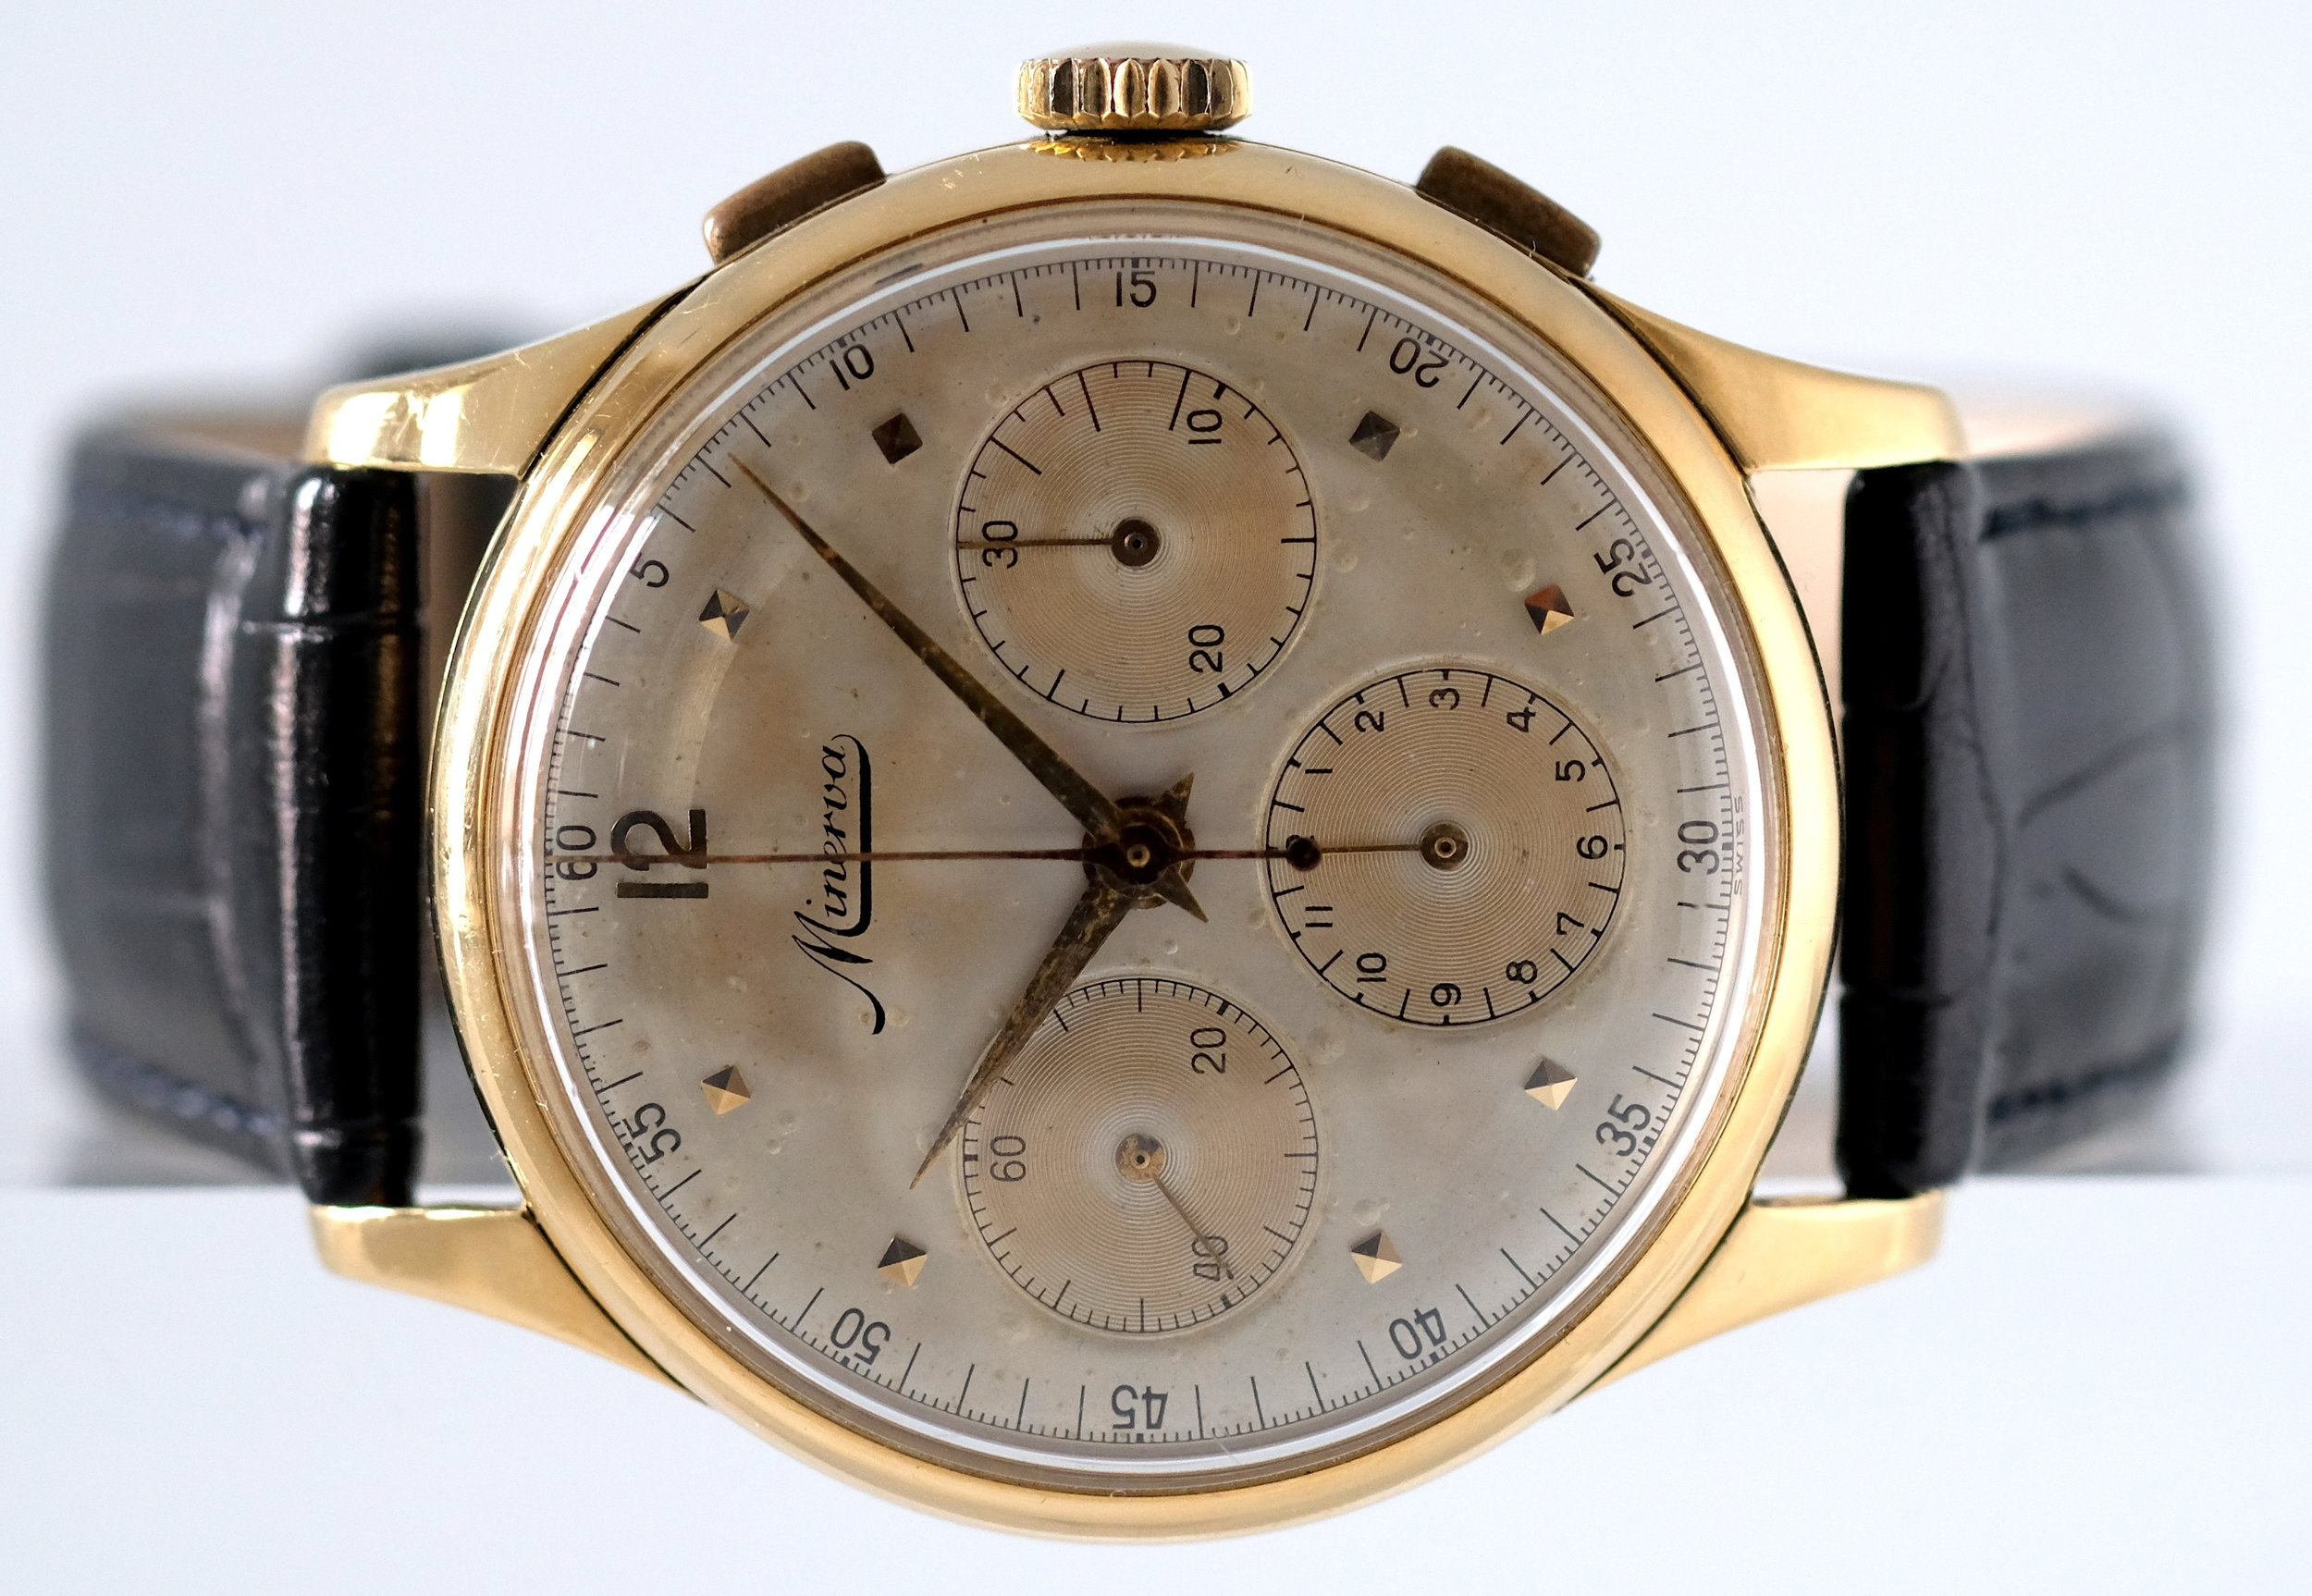 Minerva 18kt Gold Chronograph  Price: $3,450